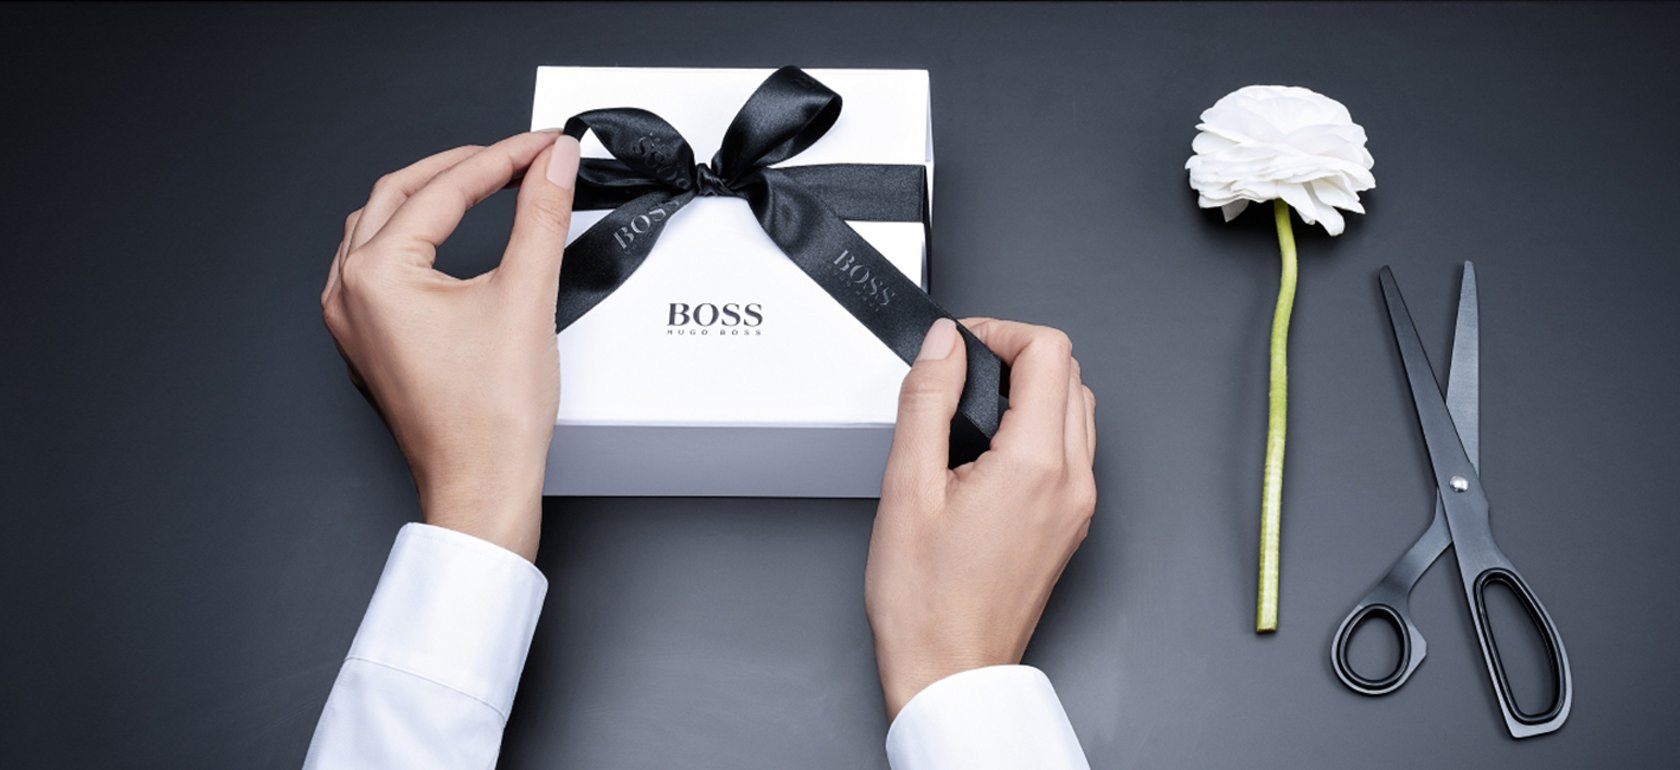 Hugo Boss Experience Program